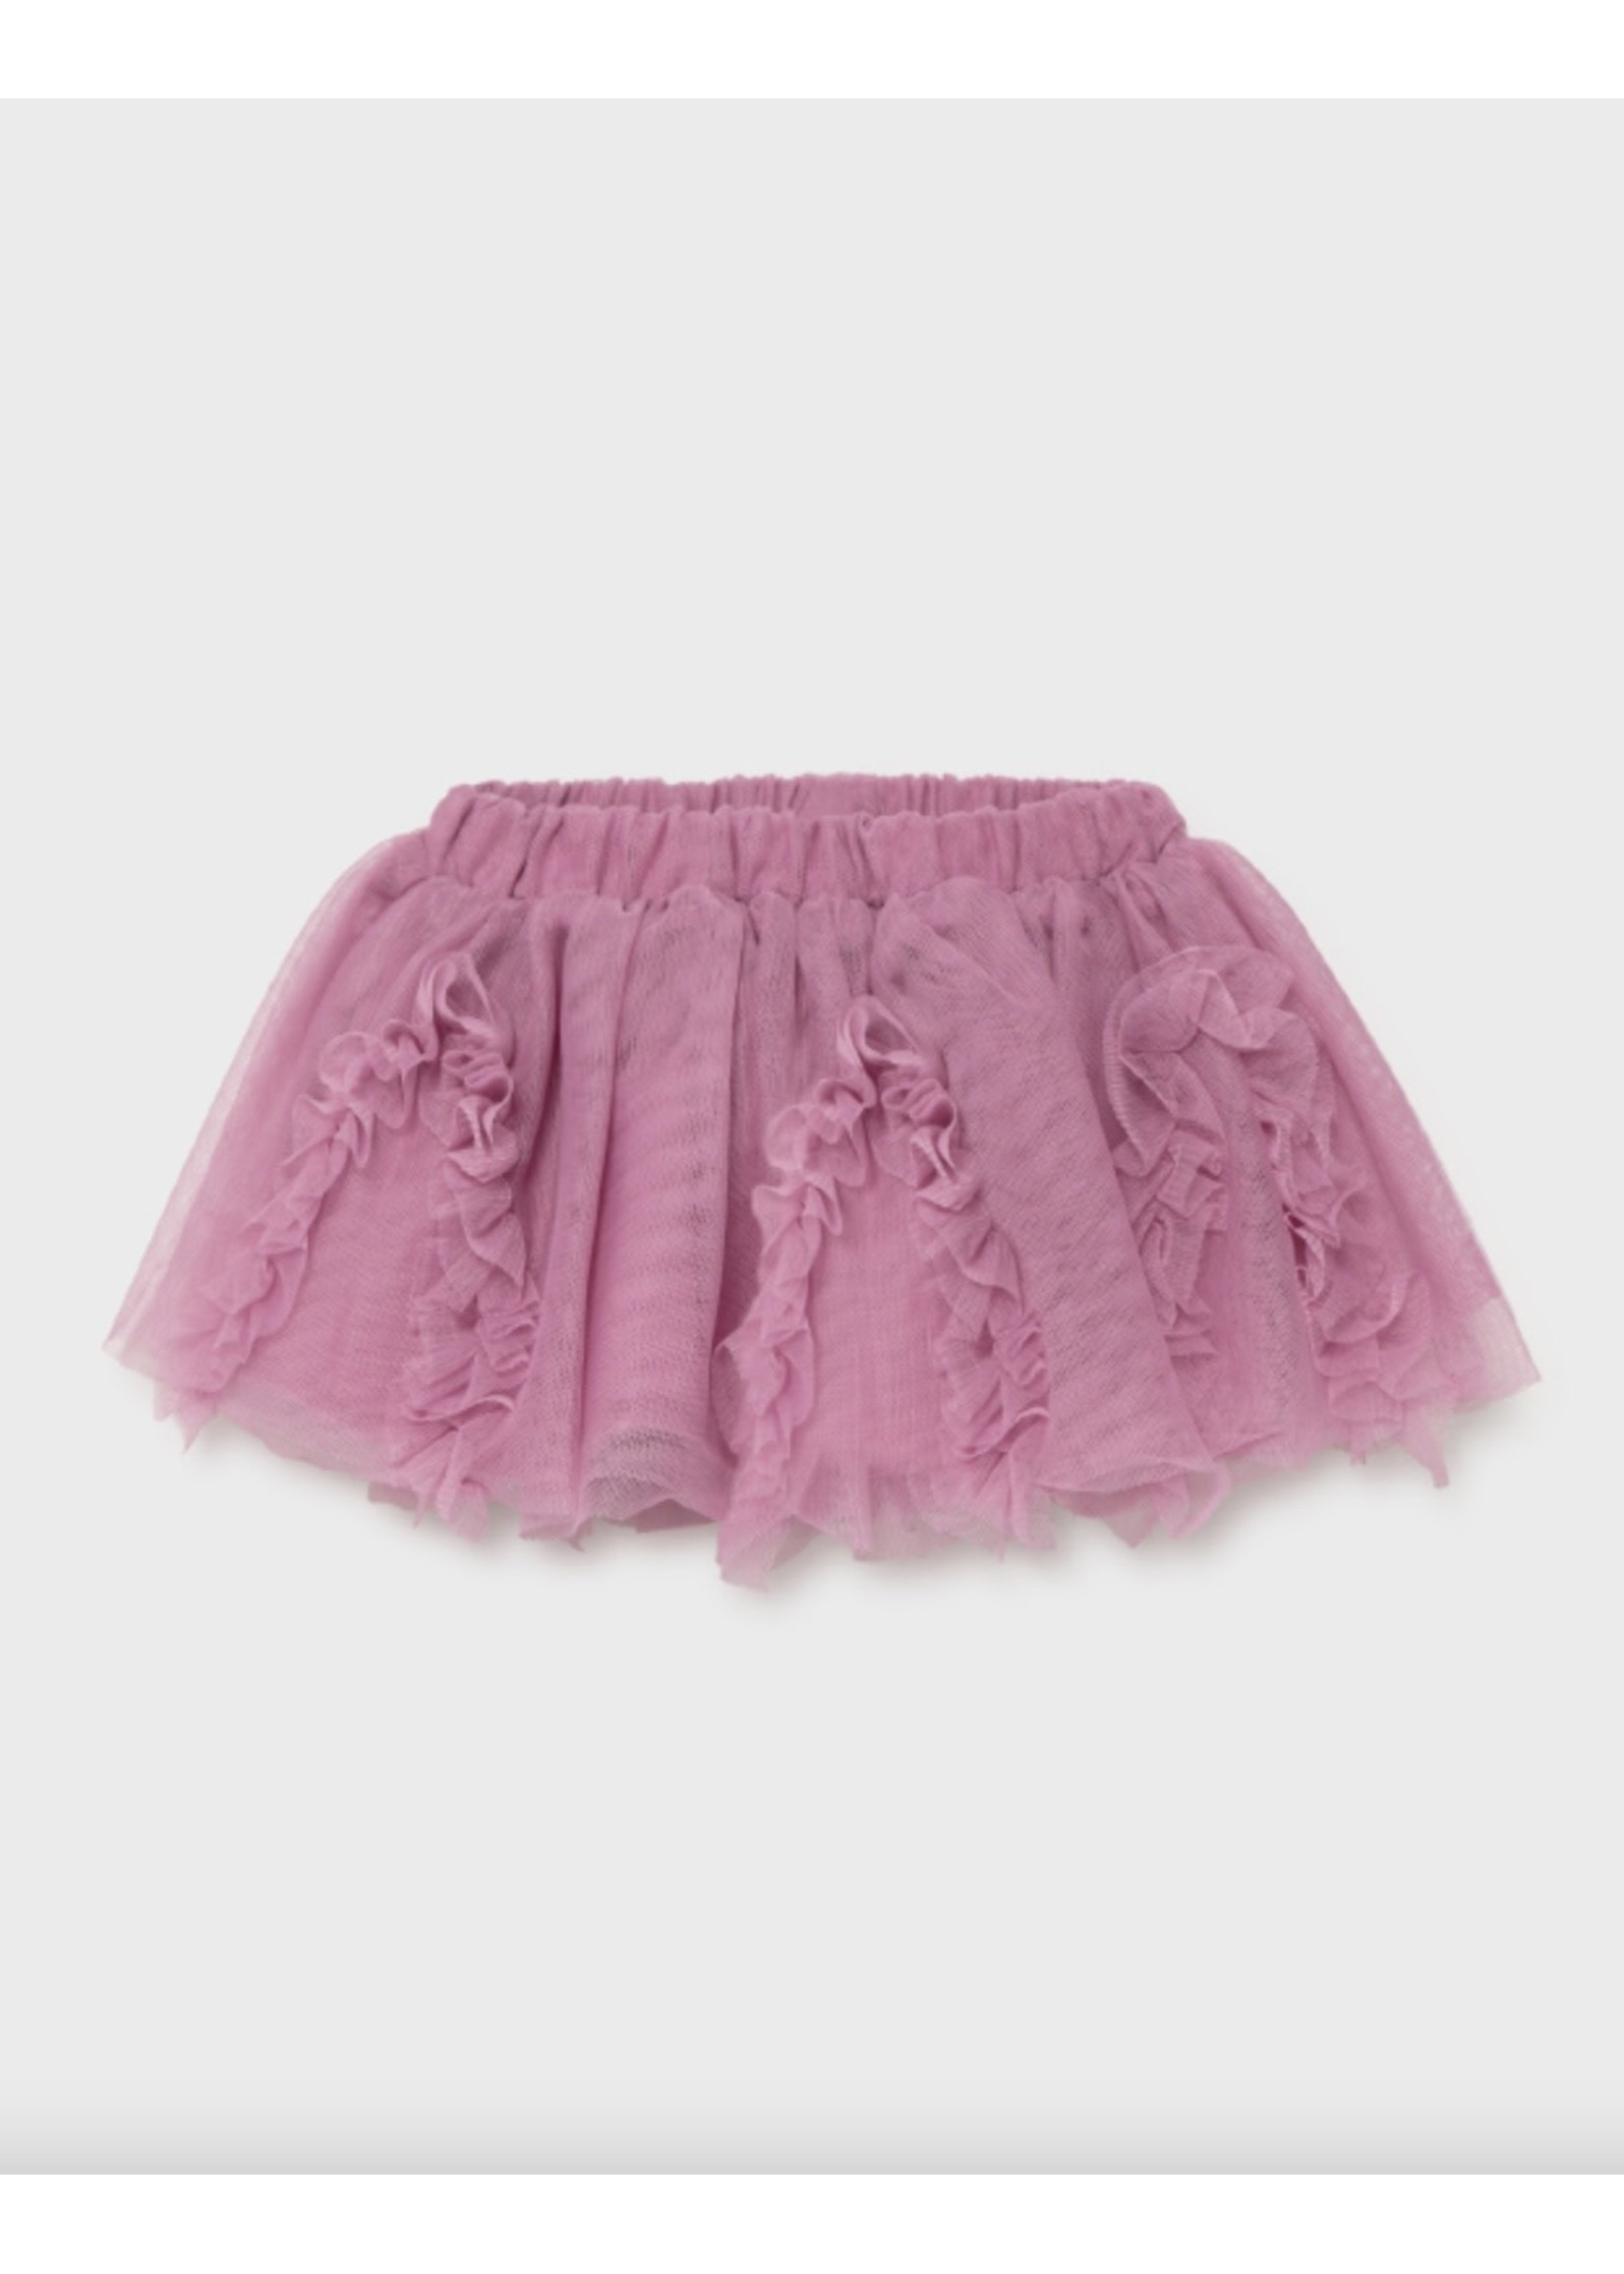 Mayoral Mayoral, Tulle Baby Girl Skirt in Mauve